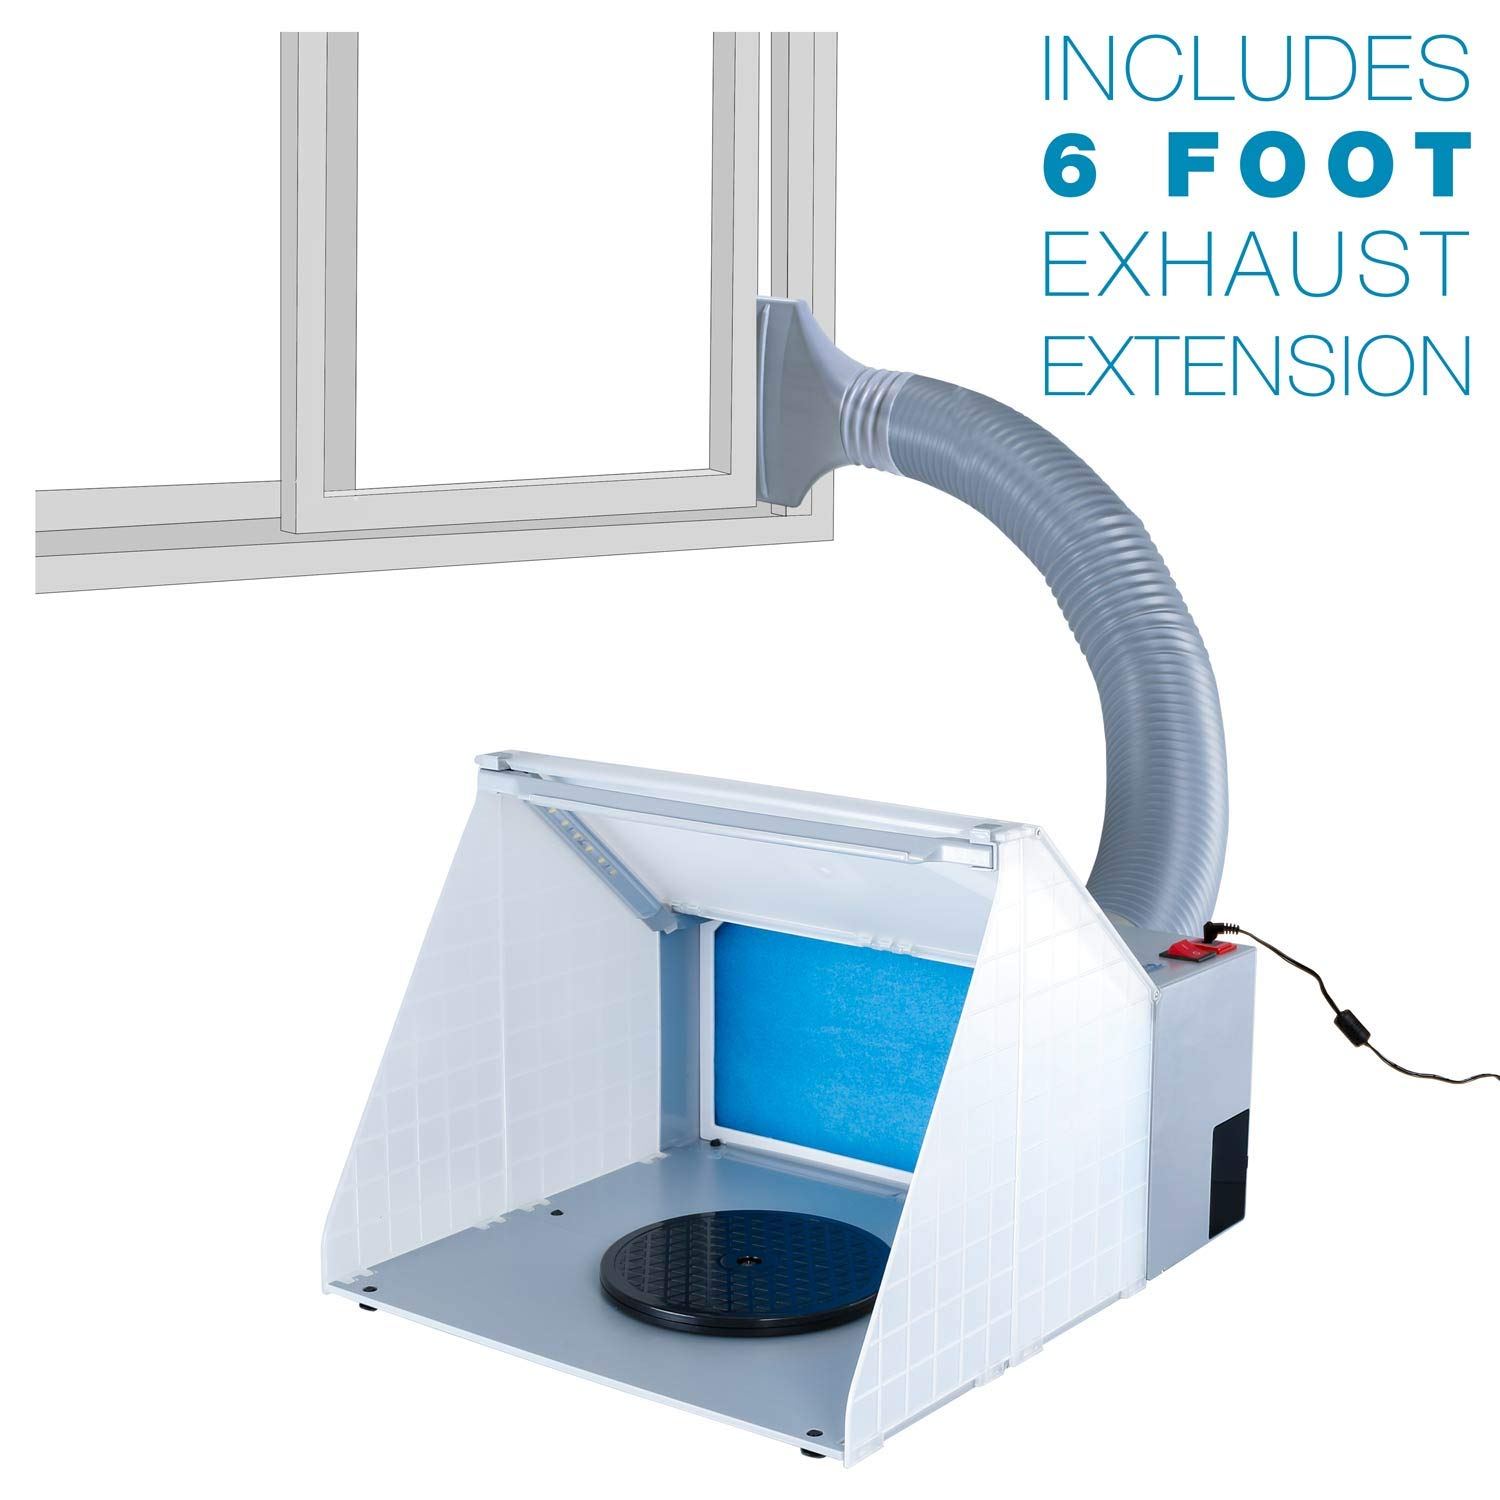 Master Airbrush Brand Lighted Portable Hobby Airbrush Spray Booth with LED Lighting for Painting All Art, Cake, Craft, Hobby, Nails, T-Shirts & More. Includes 6 Foot Exhaust Extension Hose by Master Airbrush (Image #3)